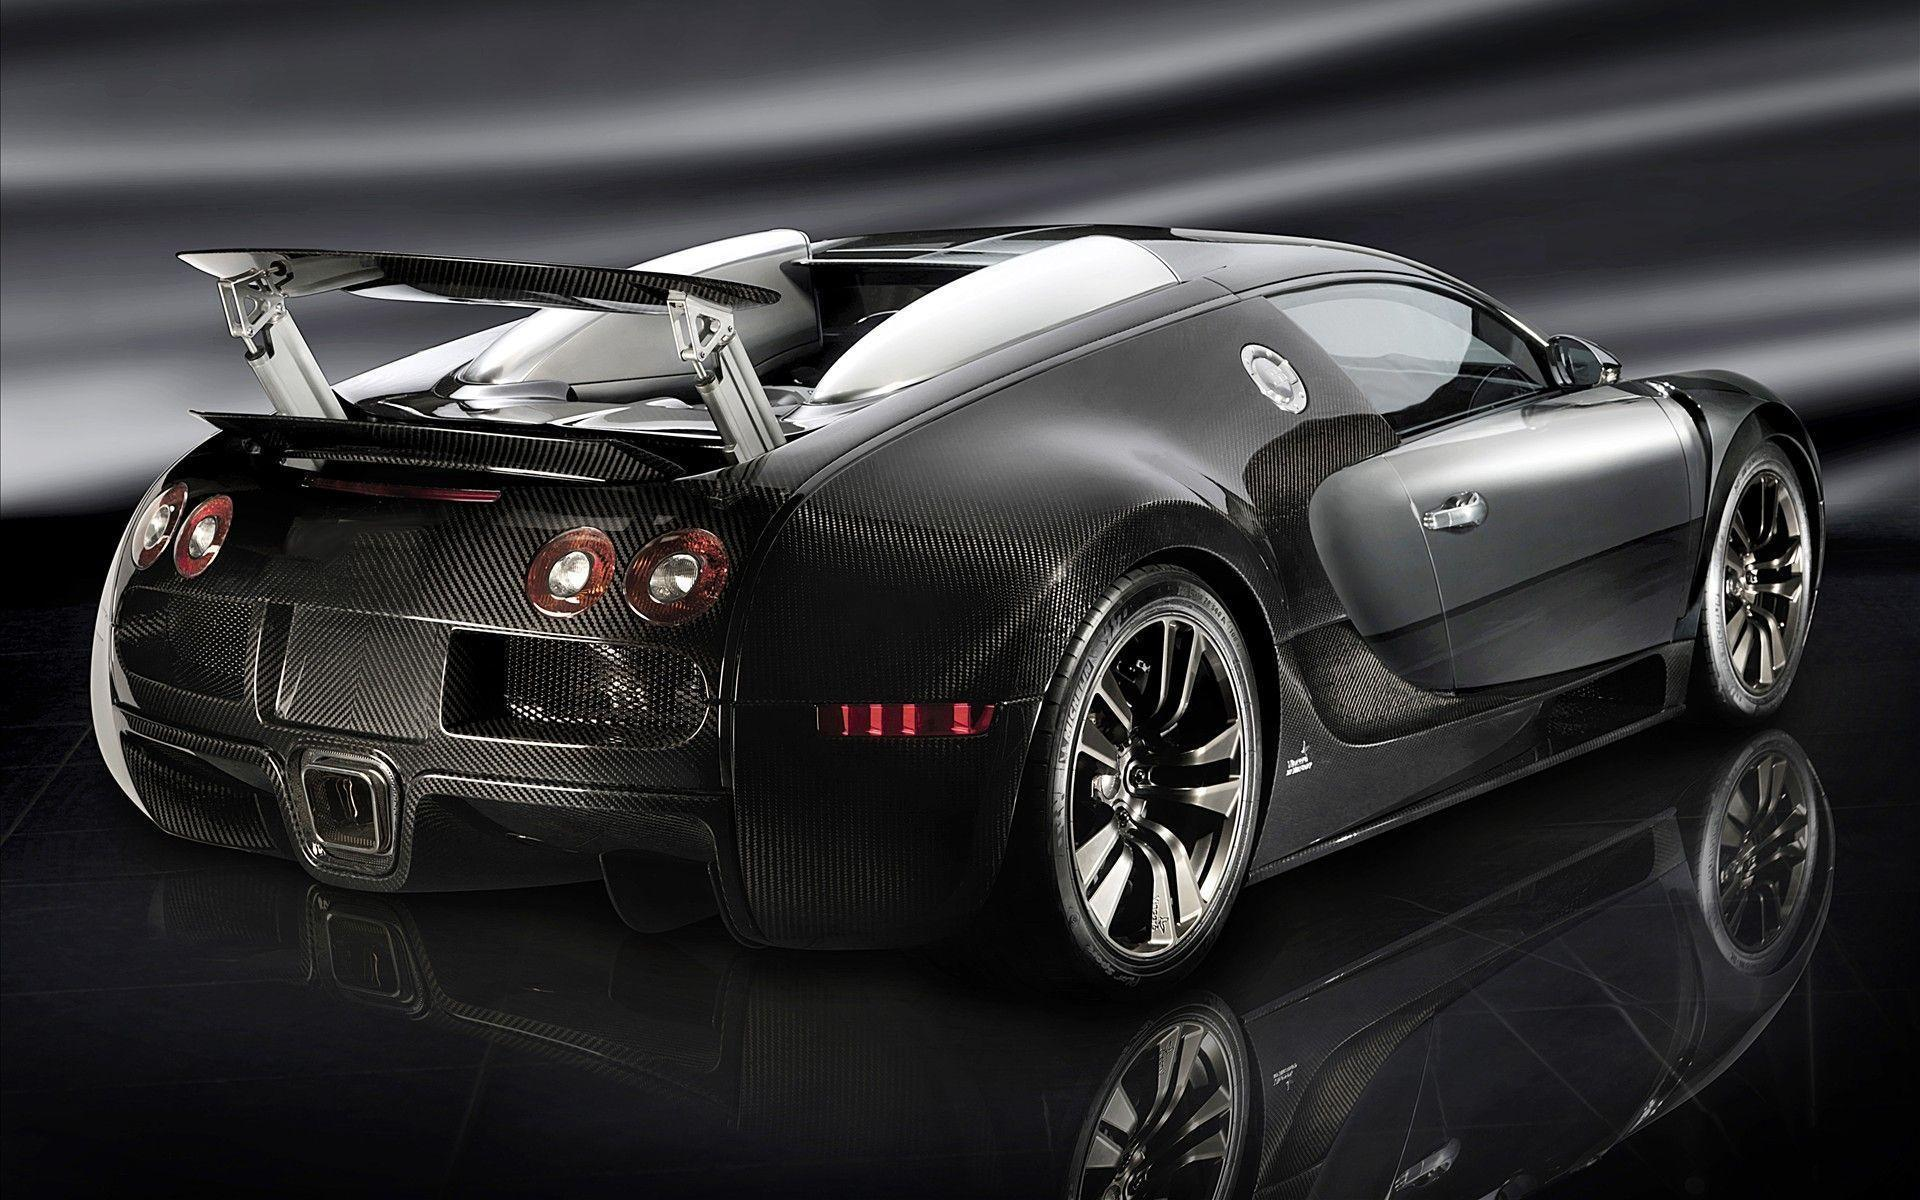 Bugatti Veyron Super Sport Full Hd Wallpaper: Bugatti Veyron HD Wallpapers